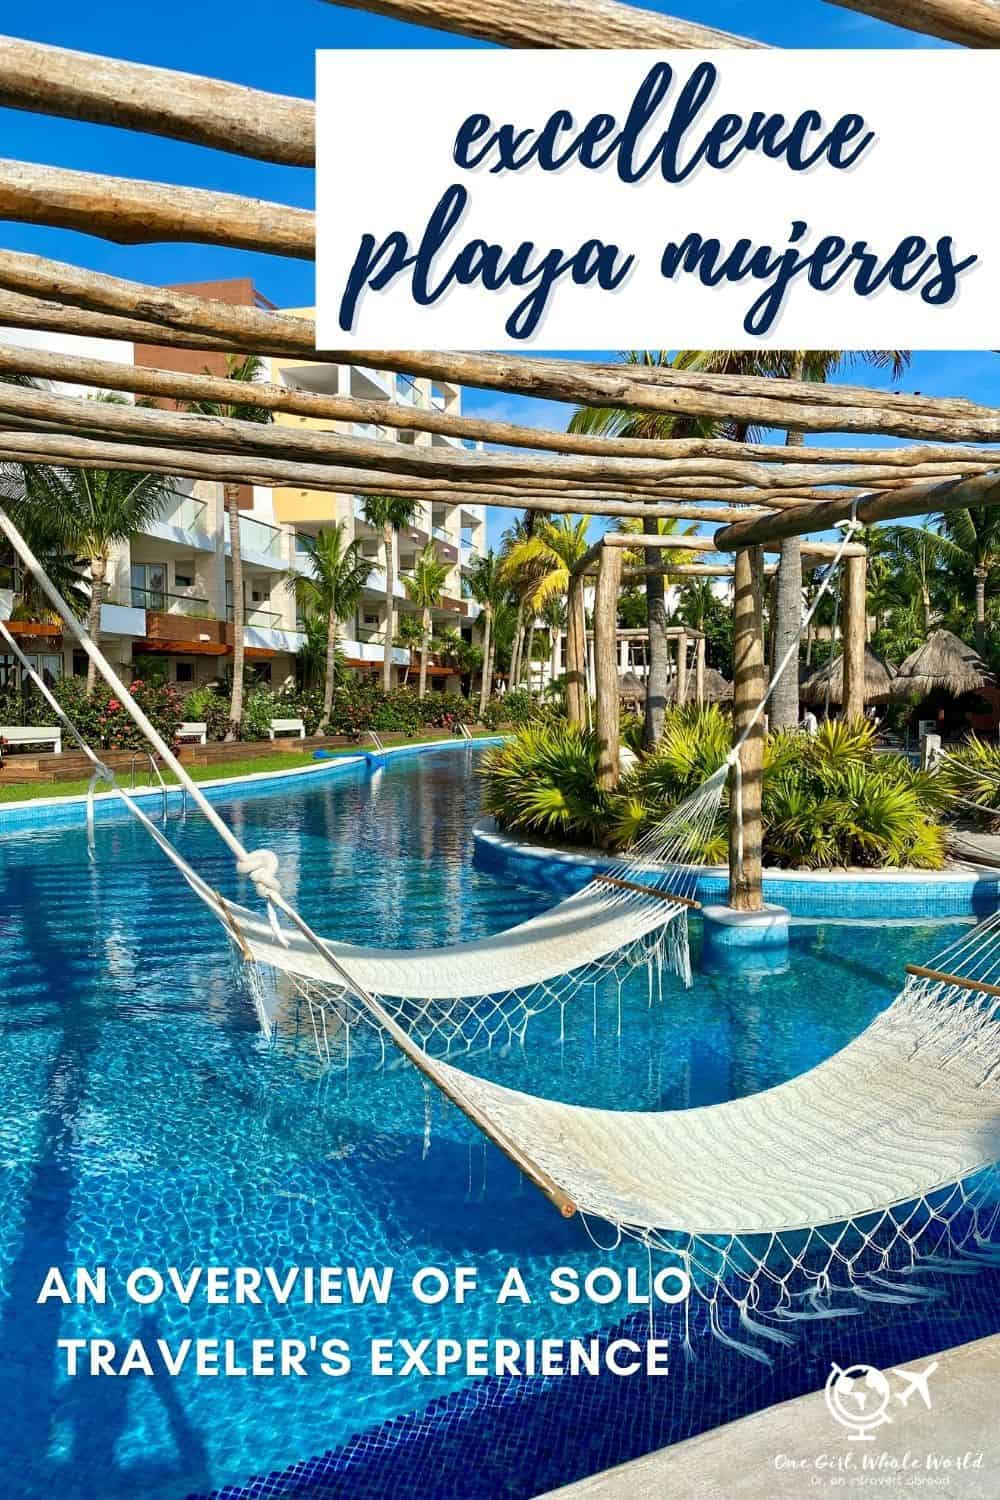 My Experience at Cancun's Excellence Playa Mujeres | If you're planning a trip to Cancun, Mexico, then Excellence should be on your short list. This post provides an overview of my experience at EPM in general (and as a solo traveler), whether it's worth it, and to help you decide if it's the right place for you. Cancun all-inclusive resorts, luxury resorts in Cancun #mexico #cancun #playamujeres #excellenceresorts #allinclusive